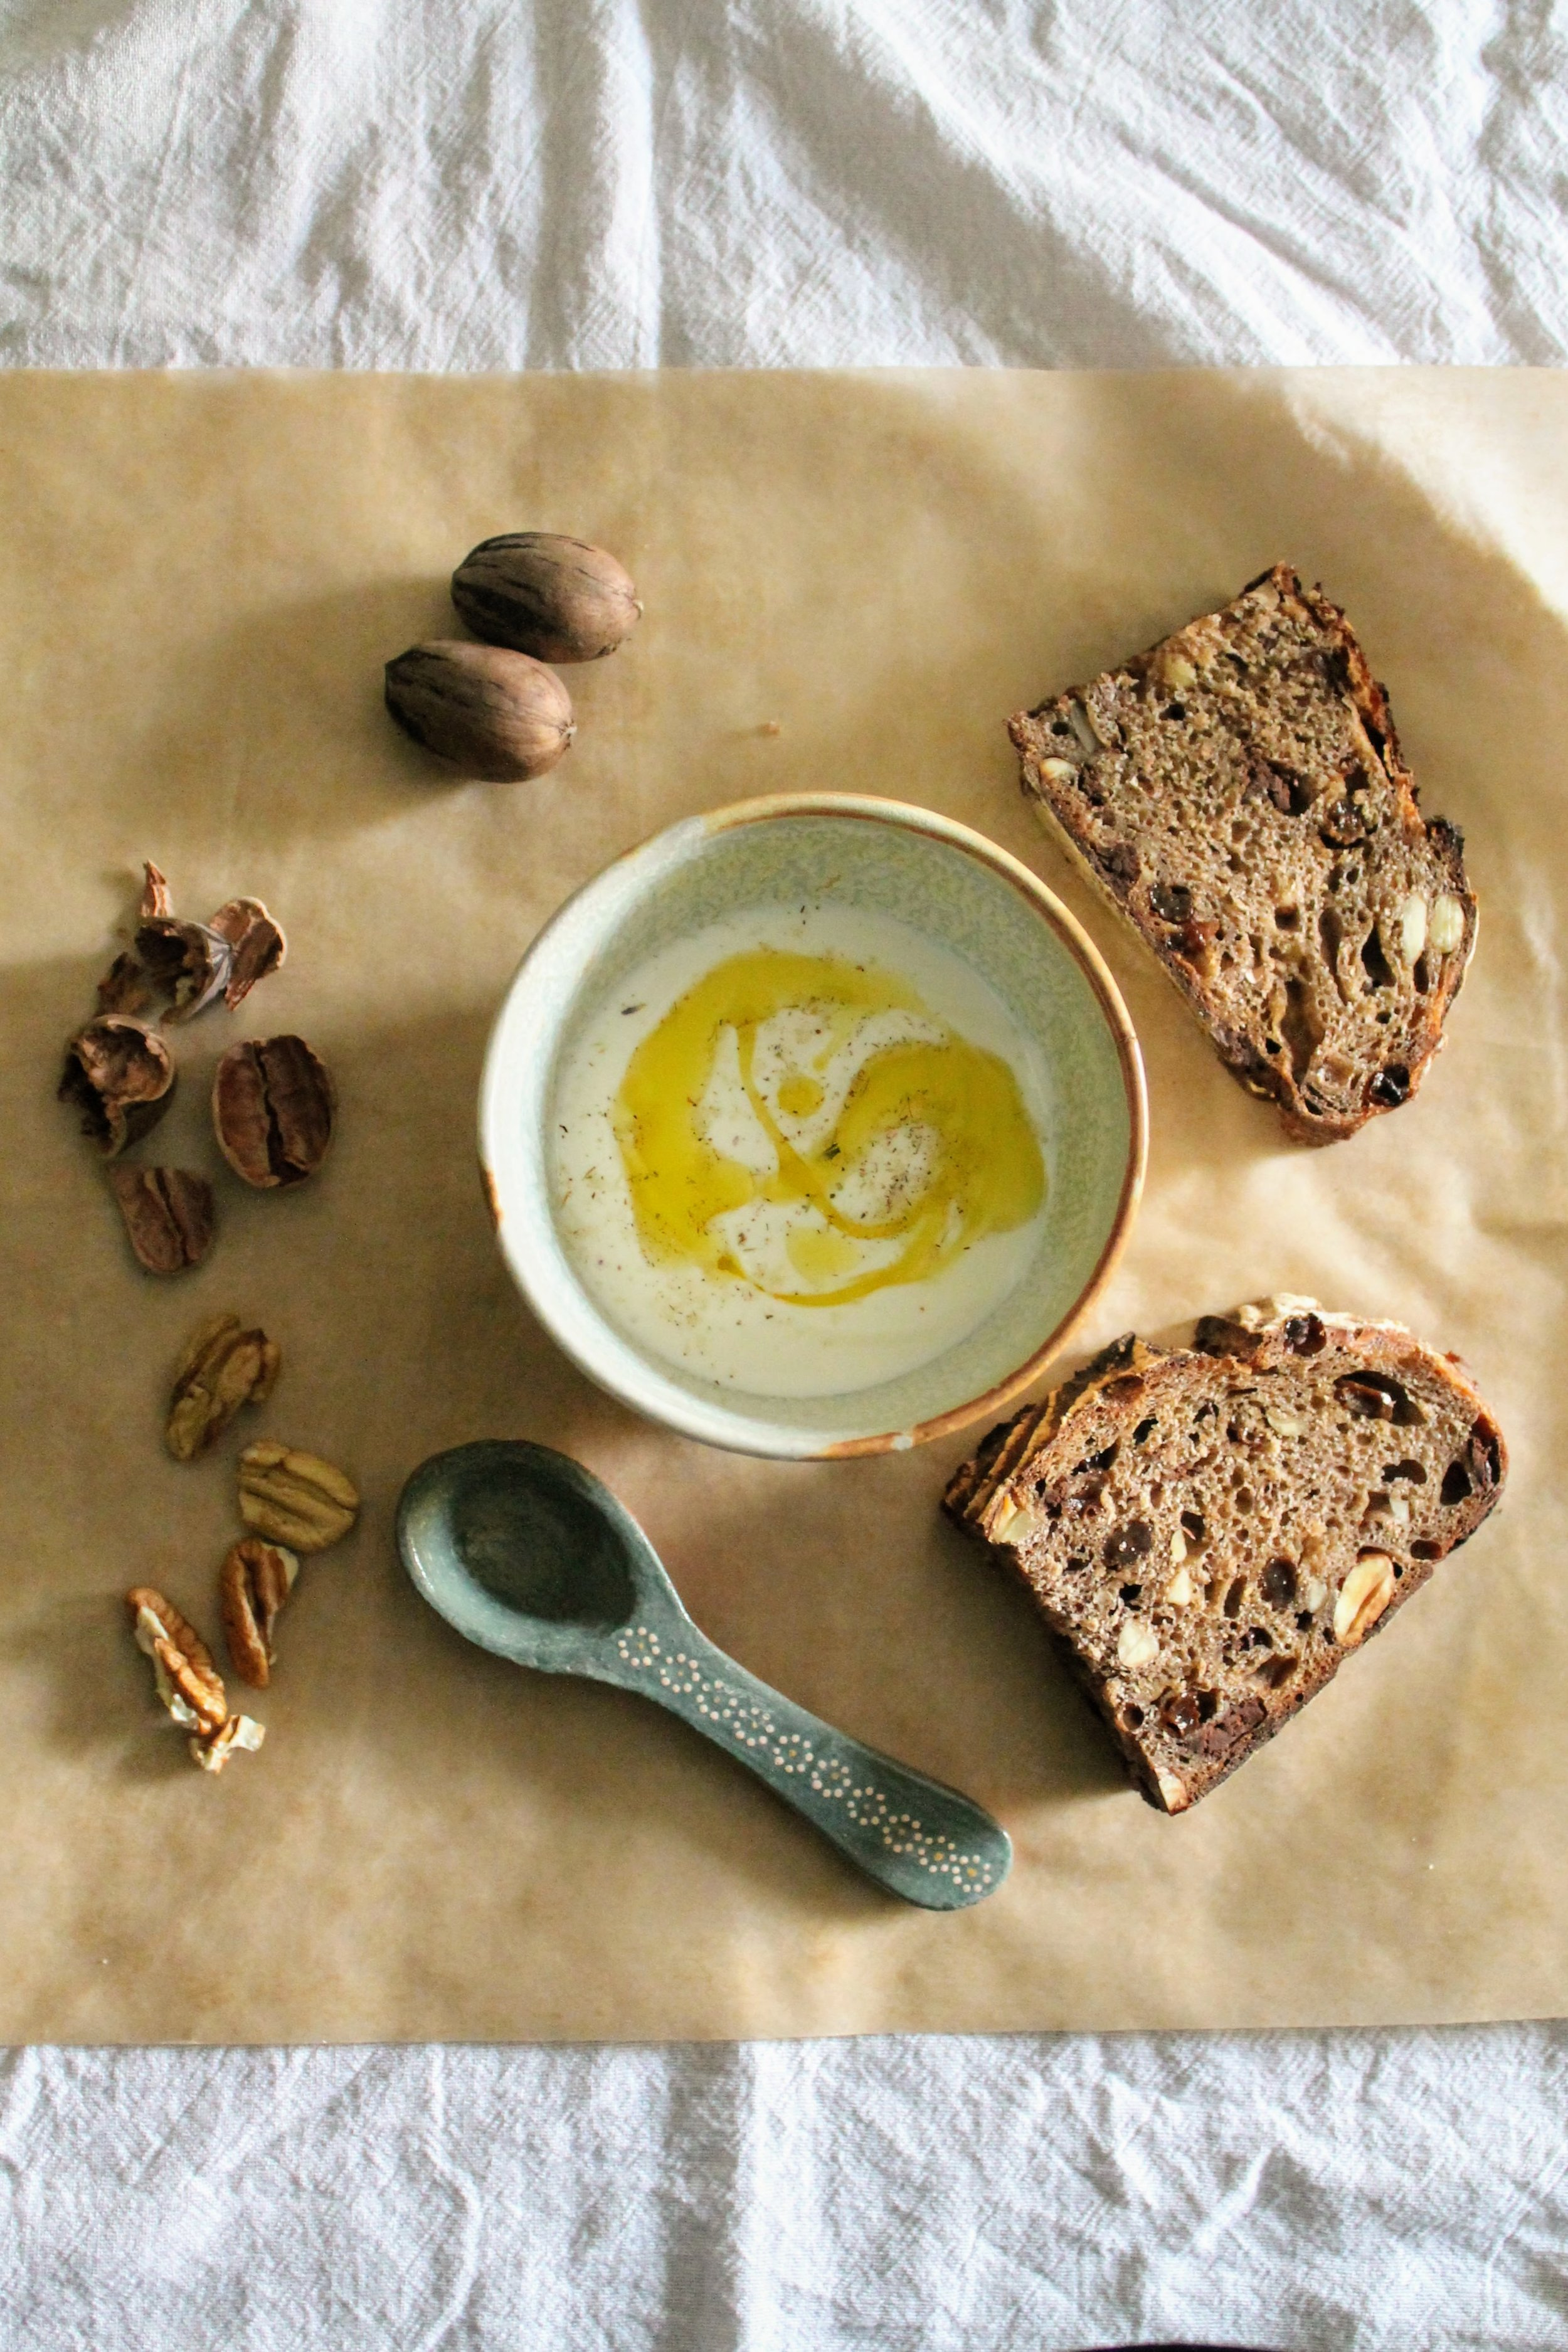 Yogurt with Olive Oil, Fresh Pecans, and Sourdough